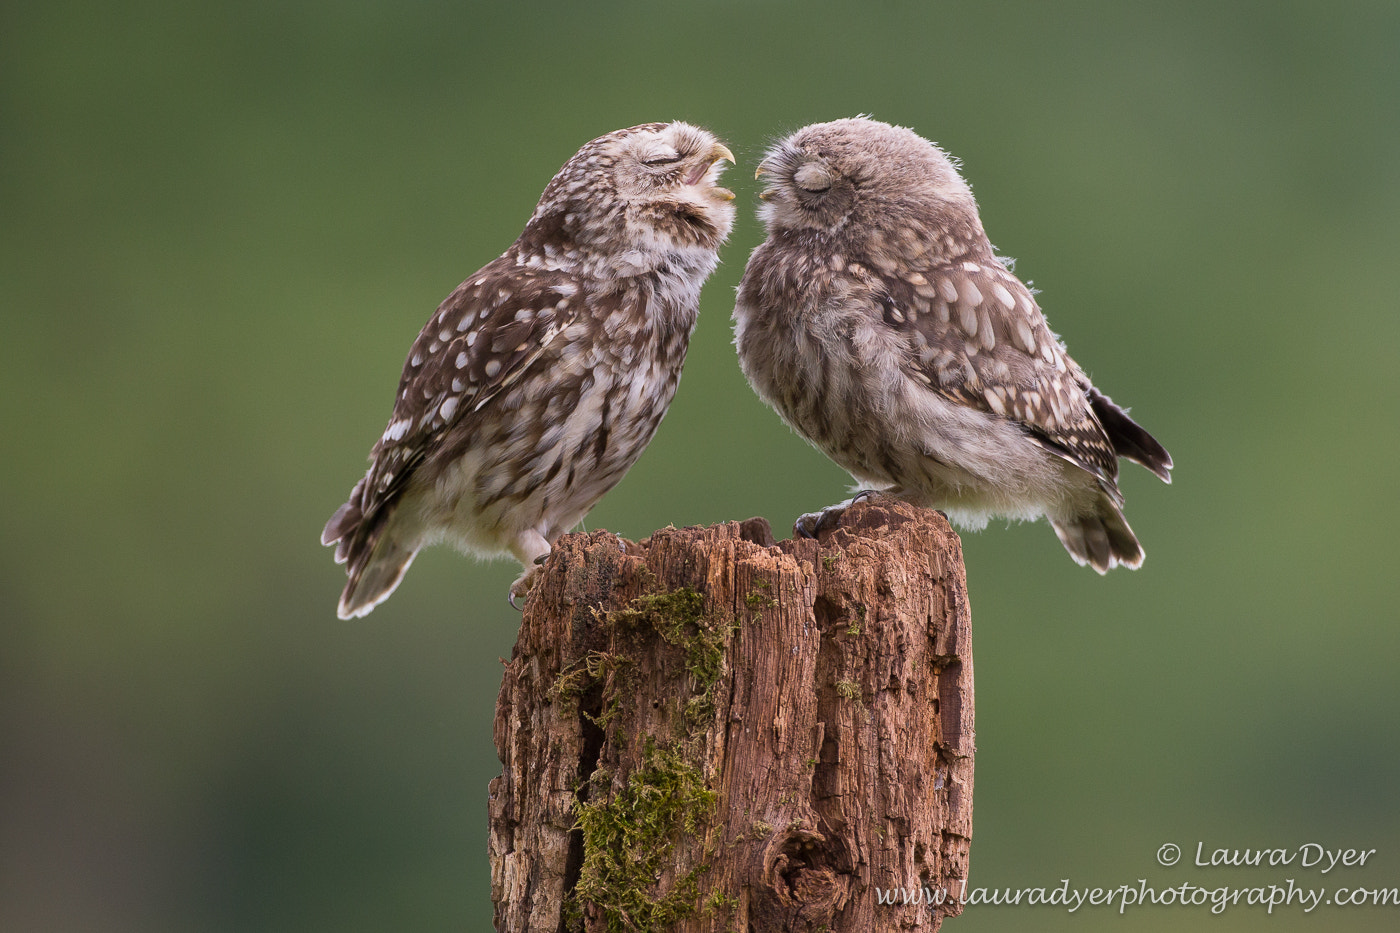 Photograph Just a Little Kiss by Laura Dyer on 500px